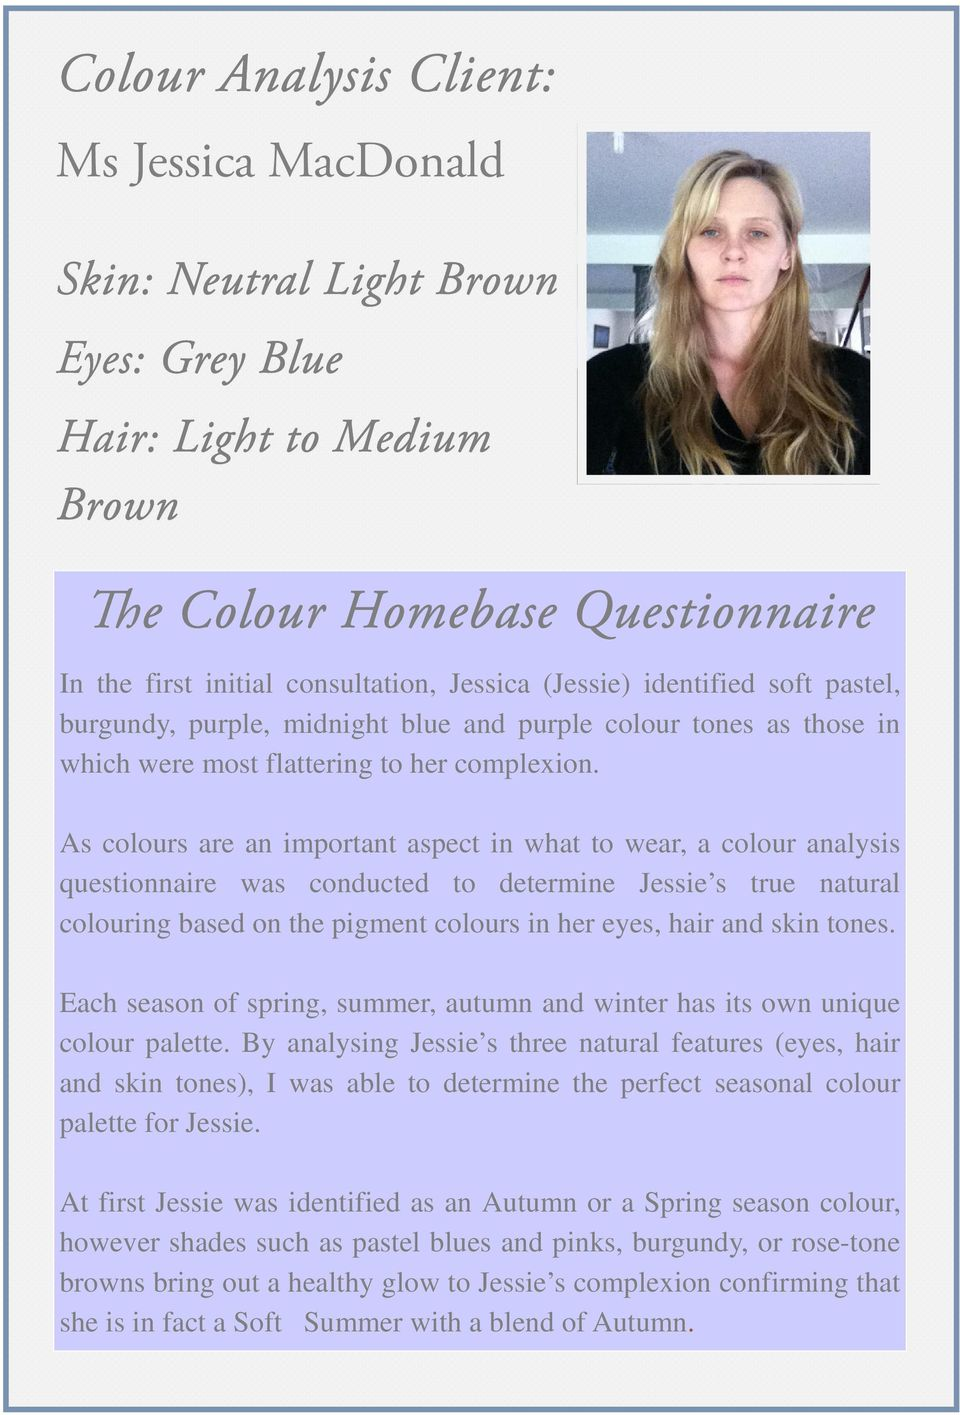 As colours are an important aspect in what to wear, a colour analysis questionnaire was conducted to determine Jessie s true natural colouring based on the pigment colours in her eyes, hair and skin